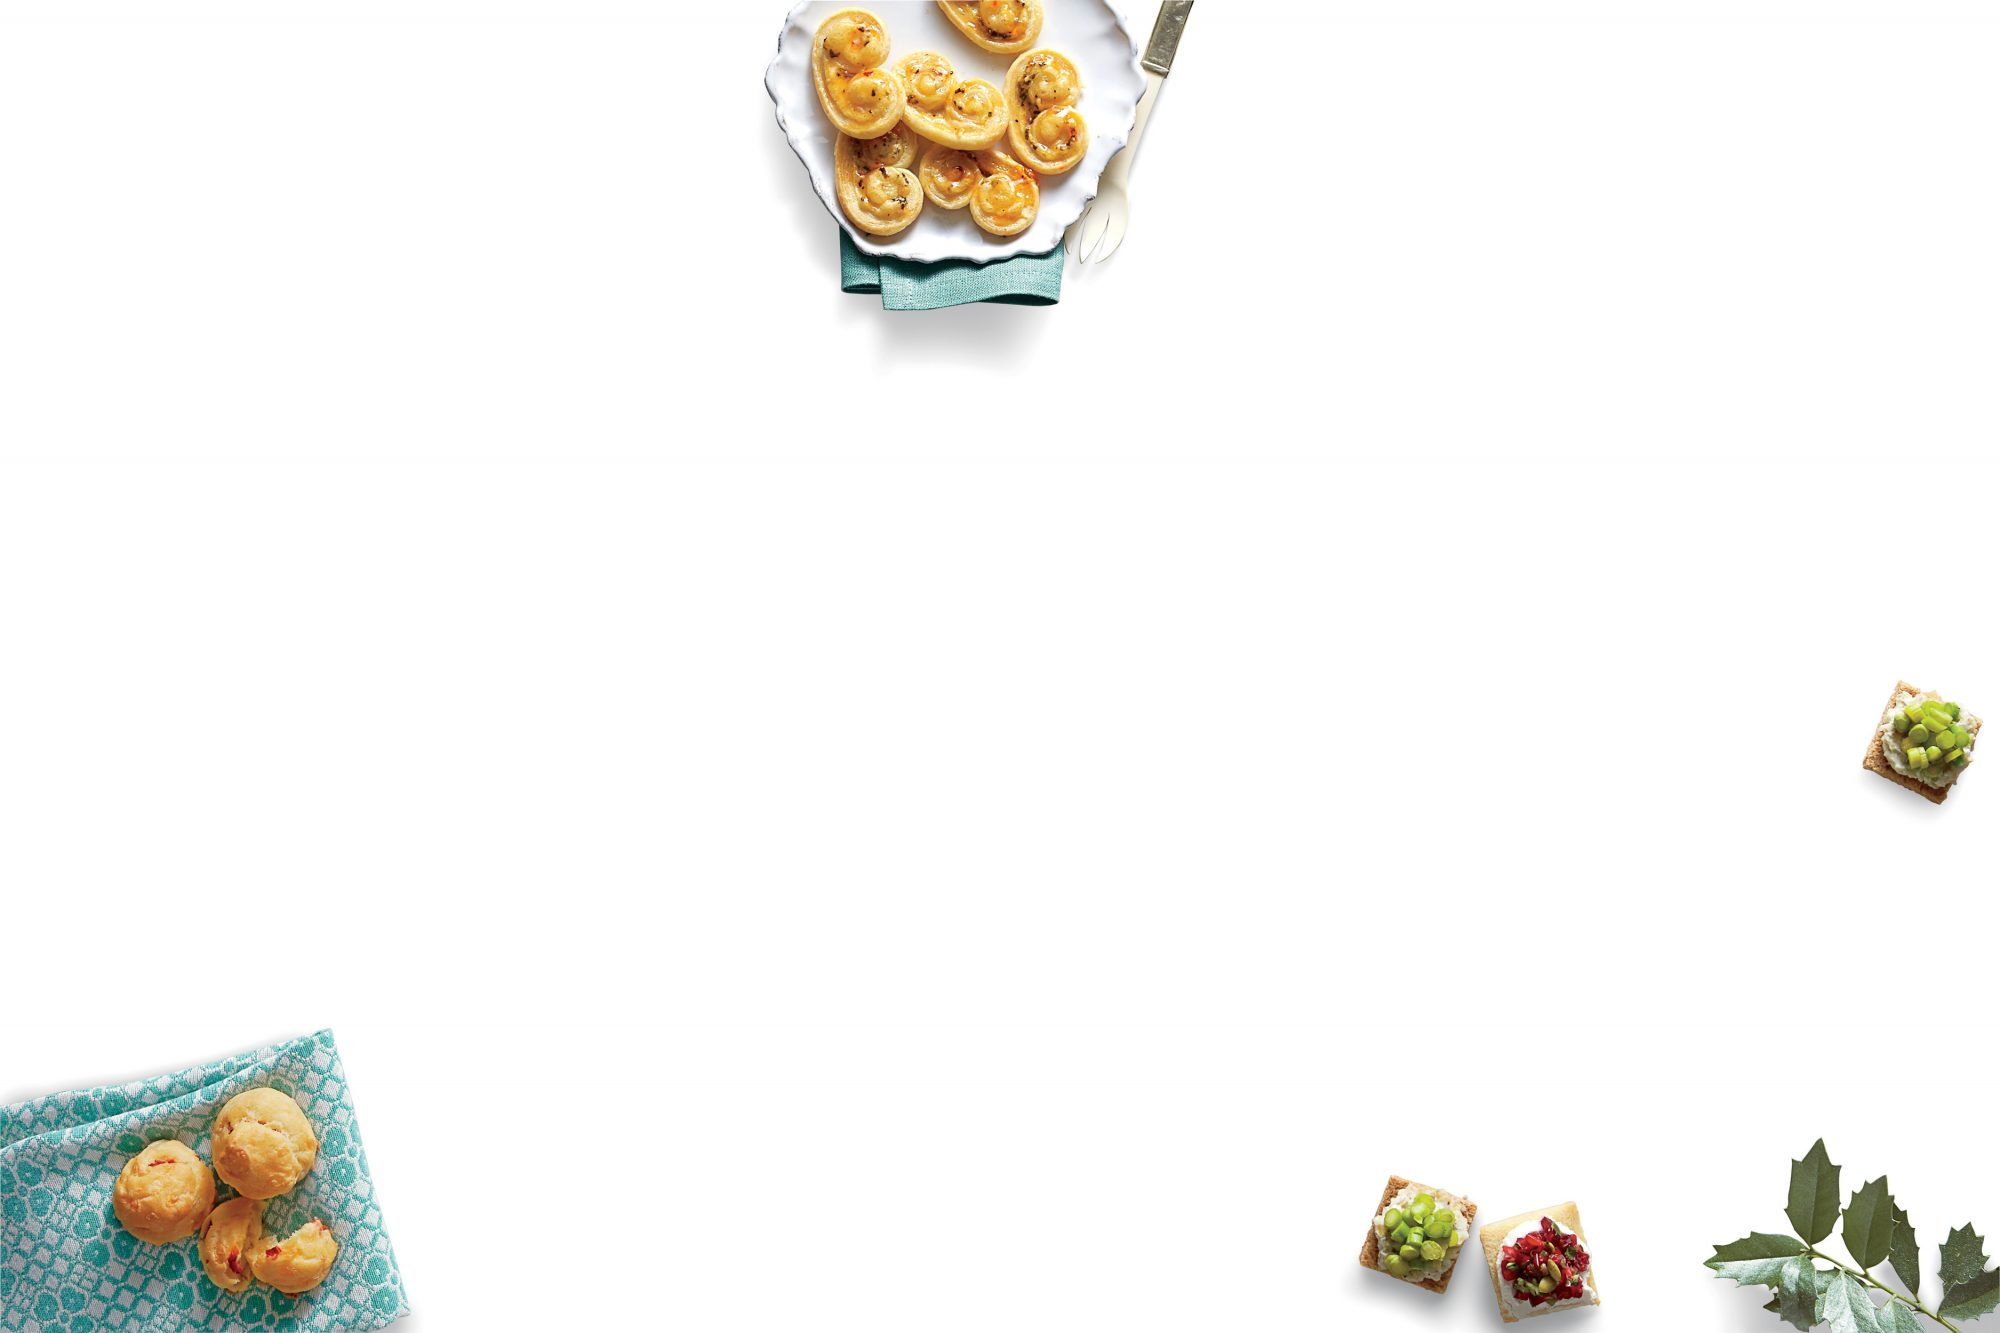 RX_1702_Oscars Apps_Pimiento Cheese Gougeres